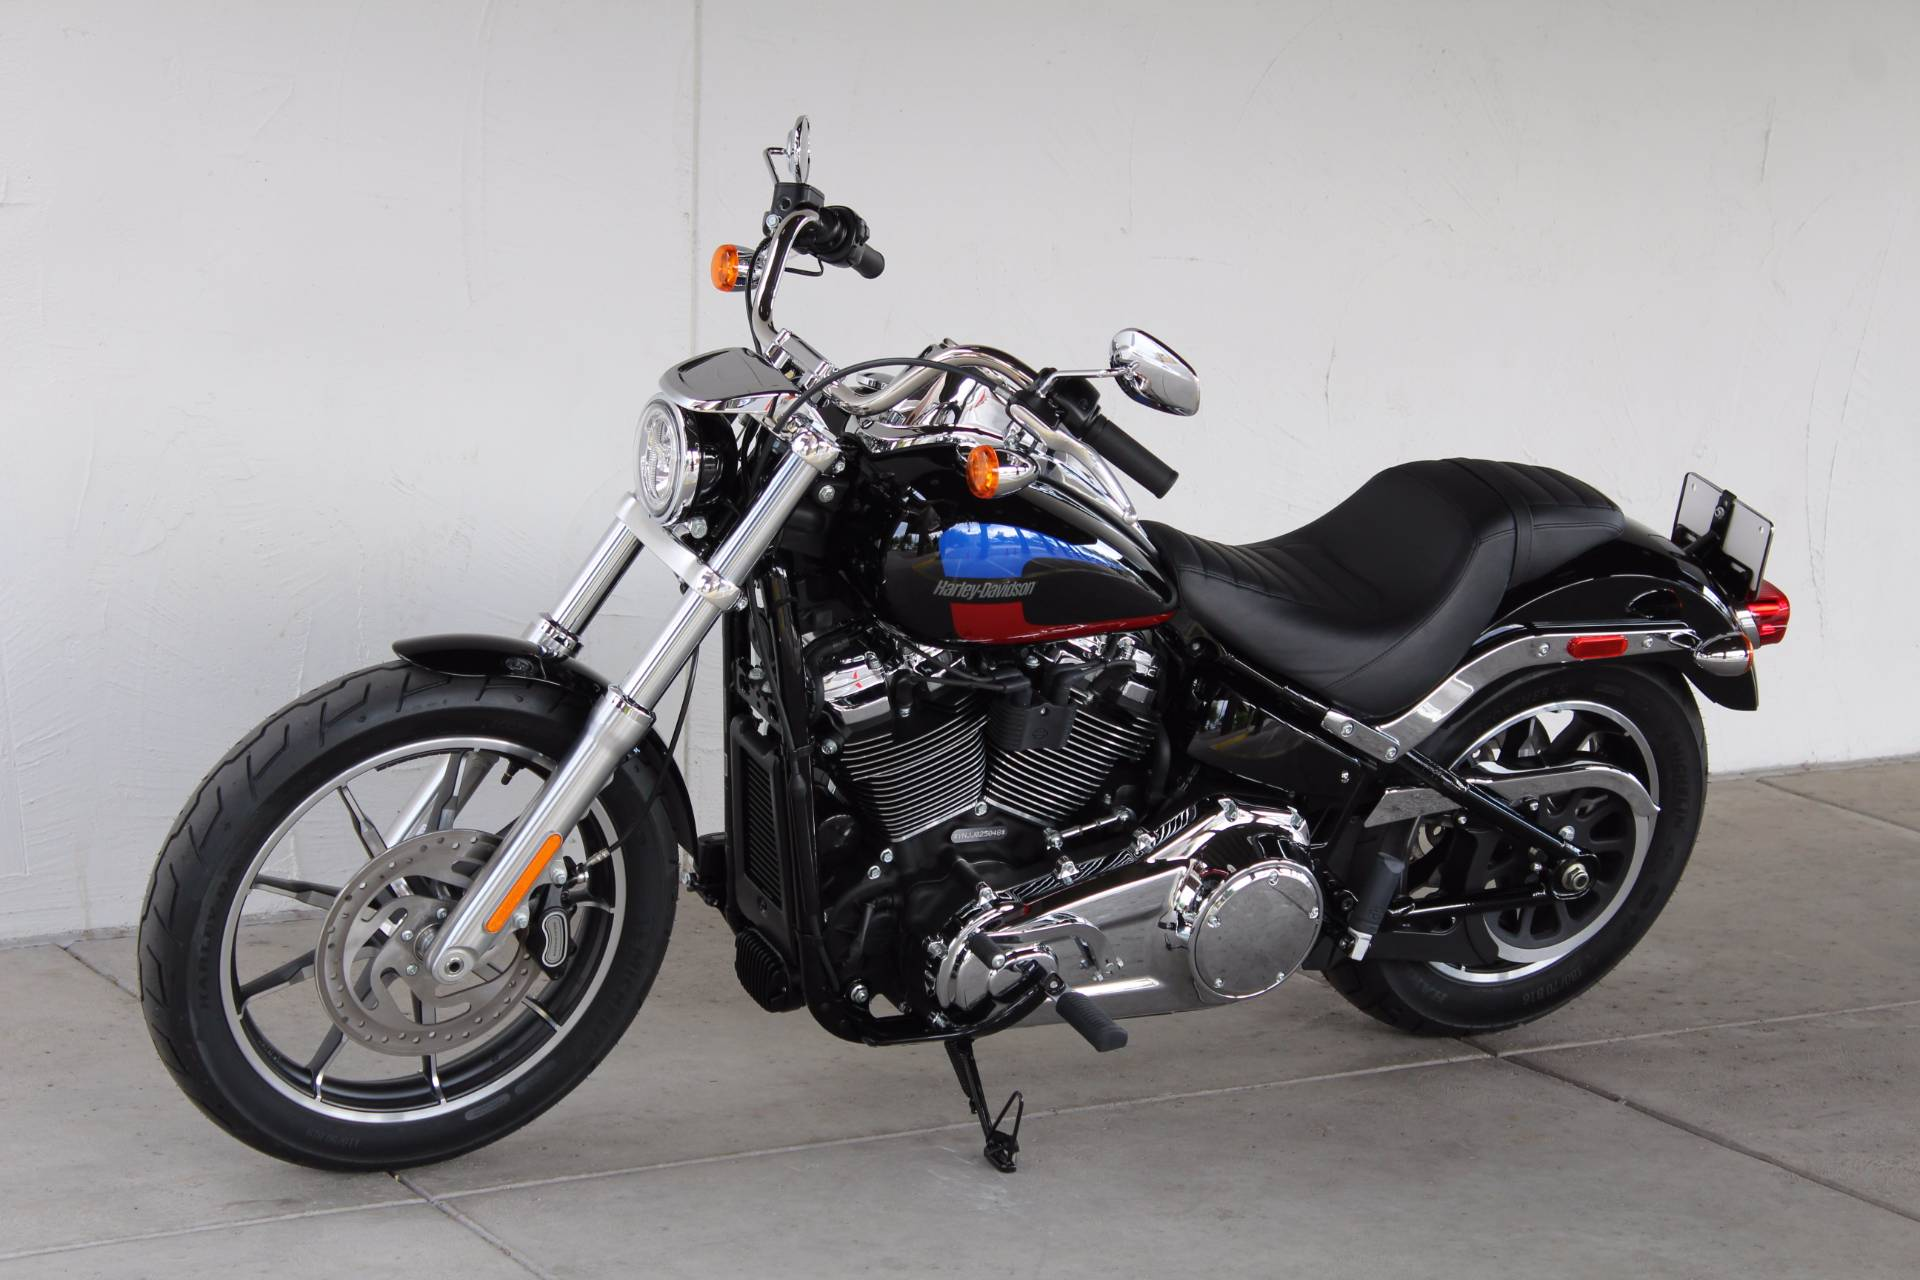 Softail Dealer Washington >> This Is The New 2018 Harley Davidson Softail Low Rider | Autos Post